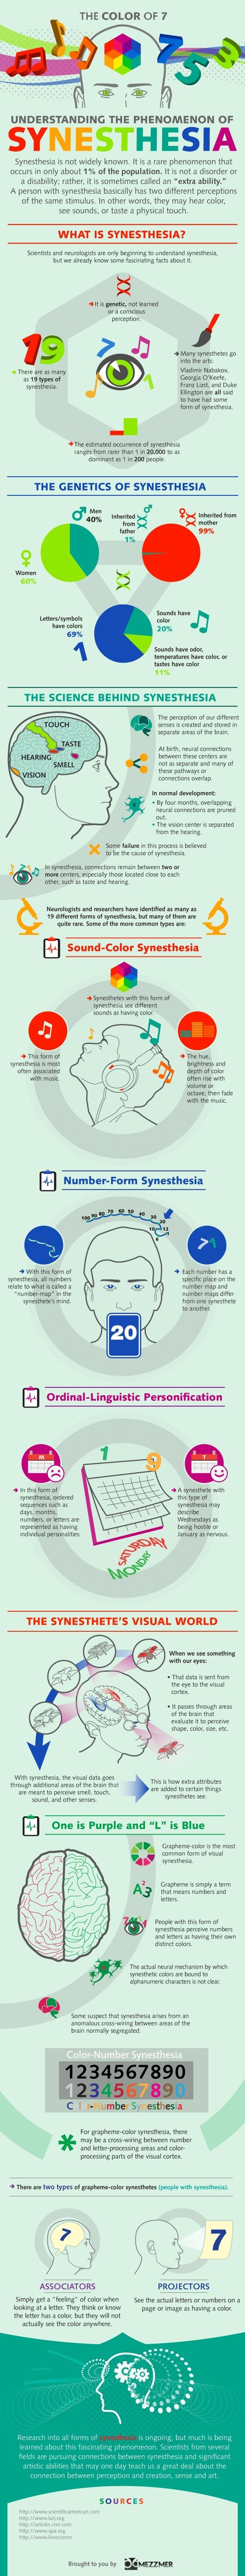 UNDERSTANDING THE PHENOMENON OF SYNESTHESIA Infographic